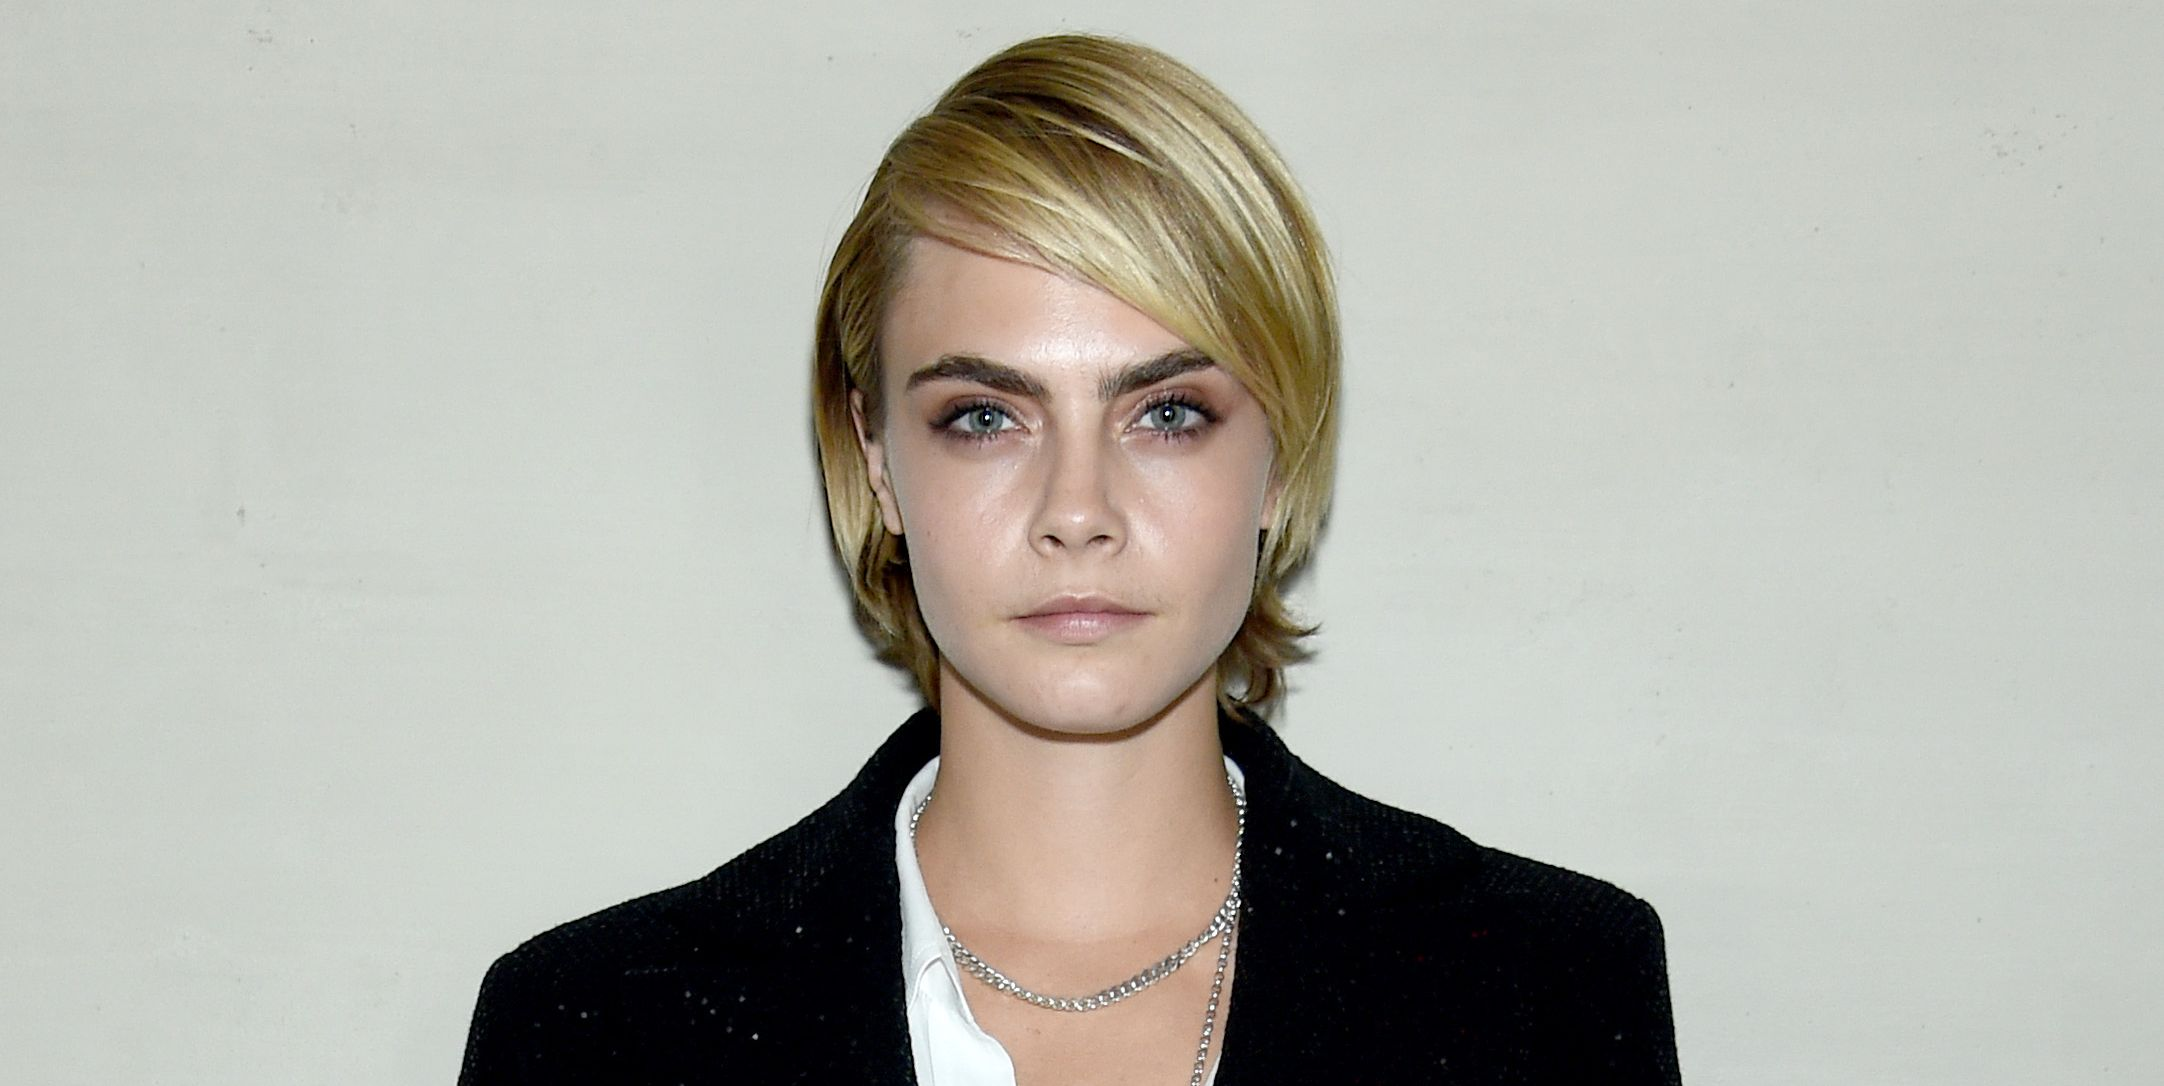 Cara Delevingne Just Lost 50,000 Followers Because Of One Instagram Post